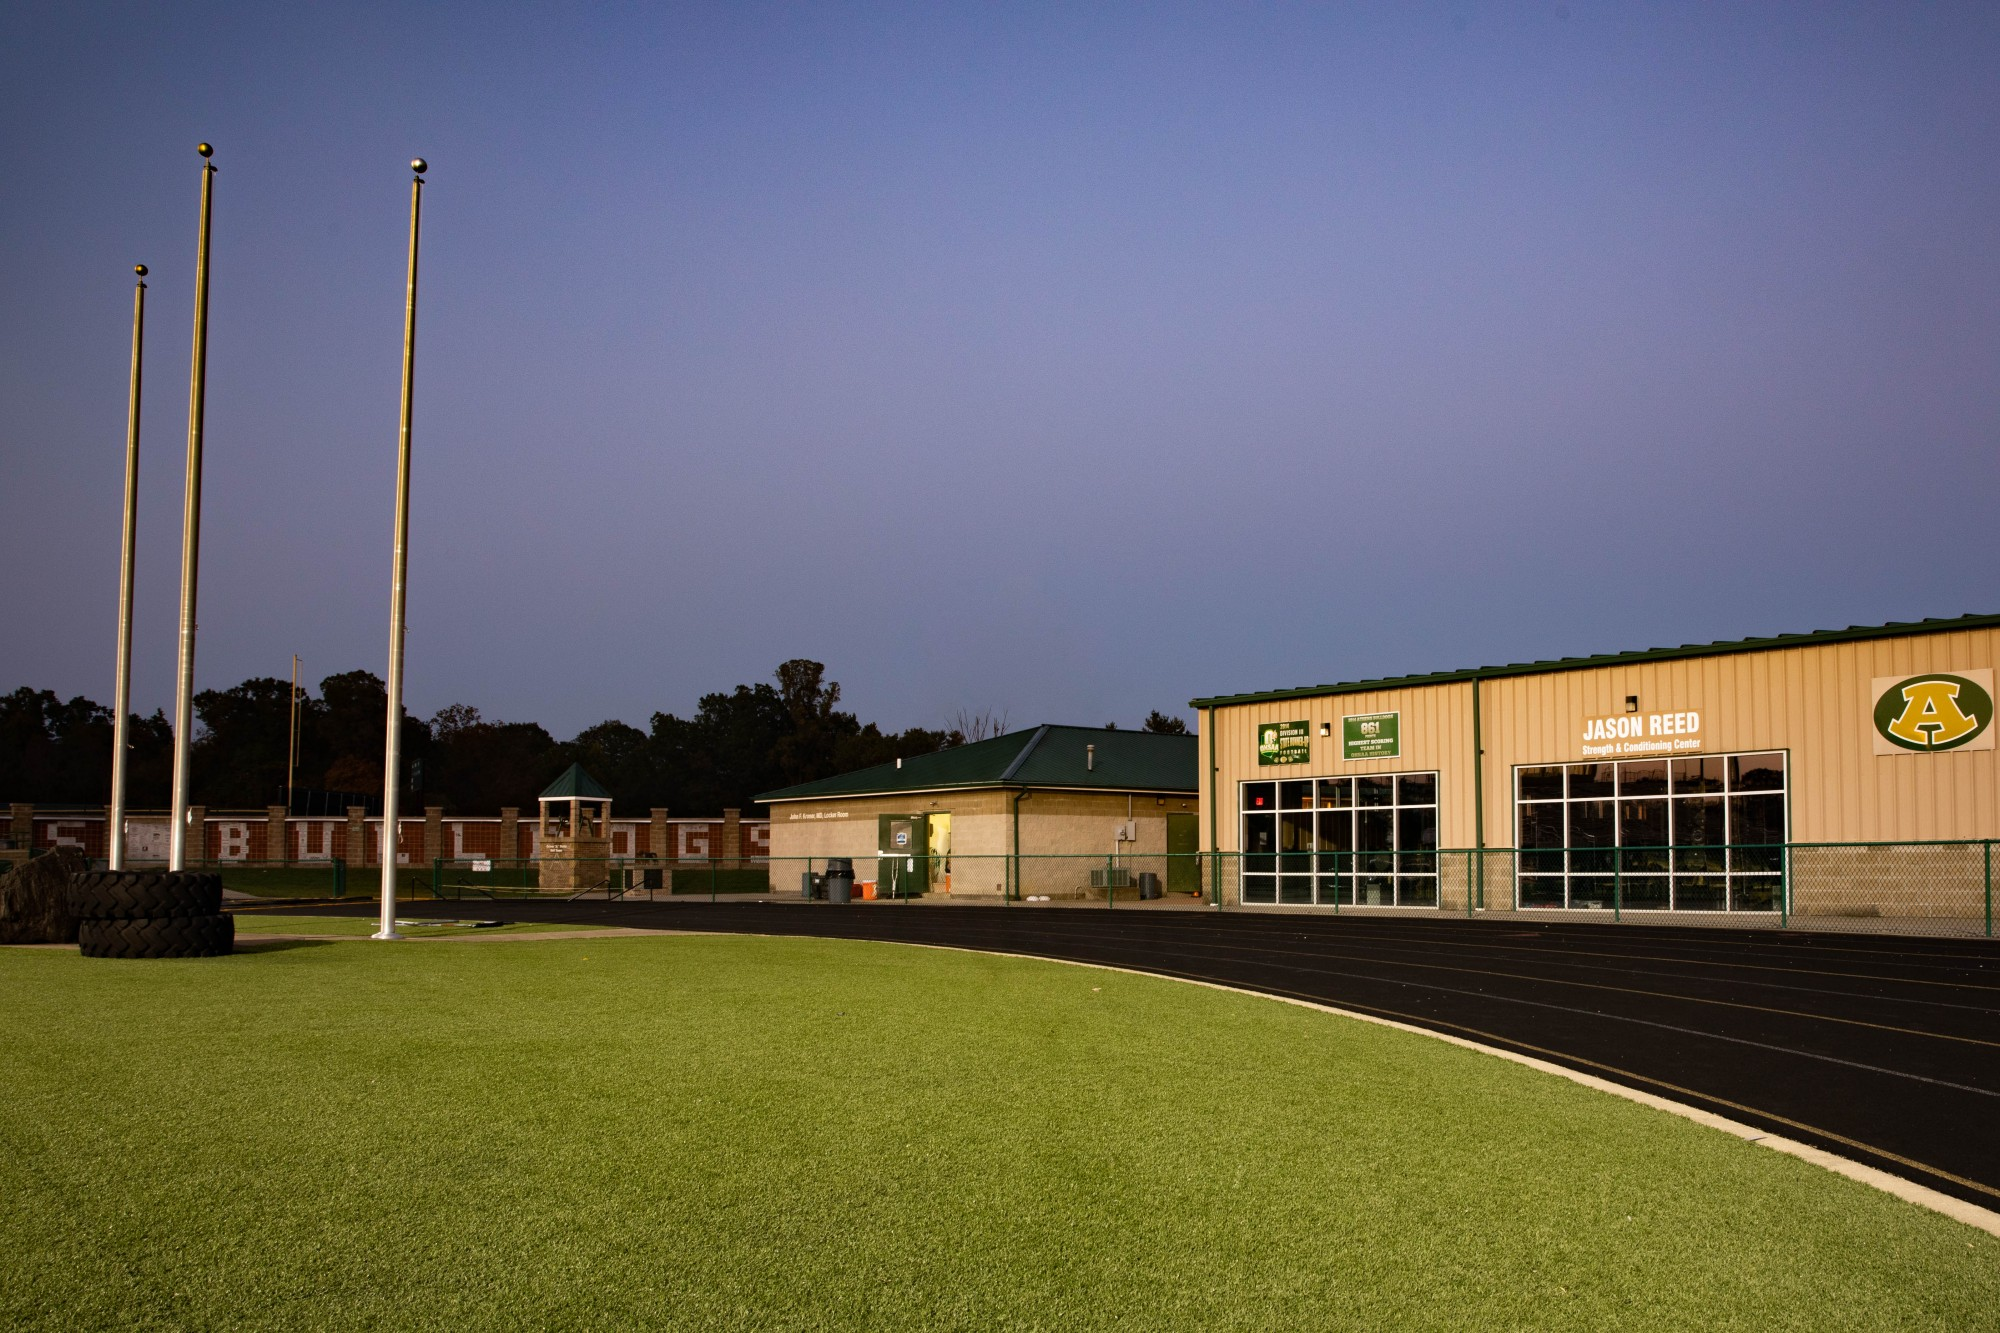 The John F. Kroner, MD, Locker Room and Jason Reed Strength and Conditioning Center at the east end of the Athens High School stadium in The Plains, Ohio.